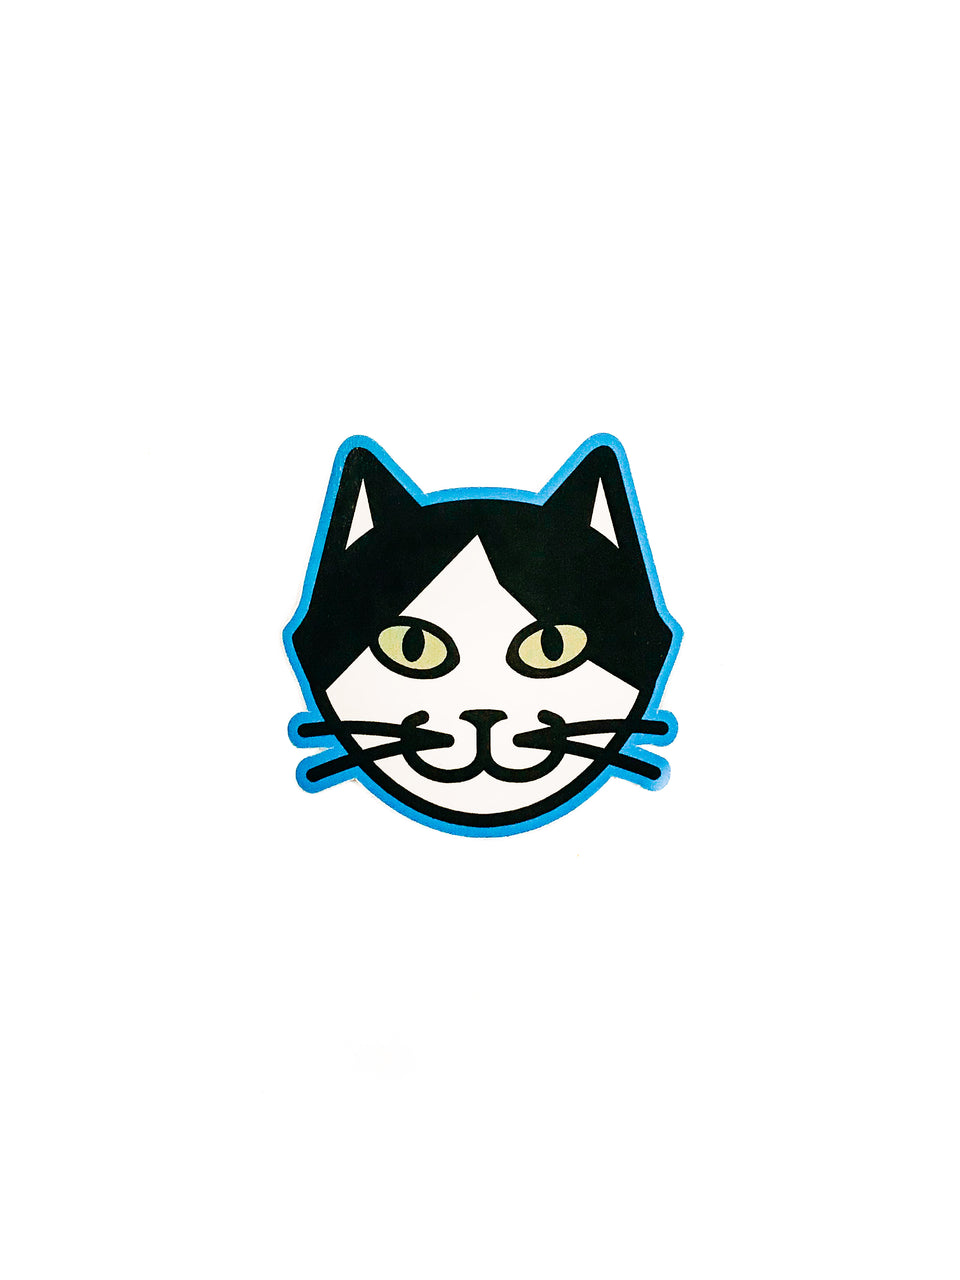 Garden Cat Sticker Set